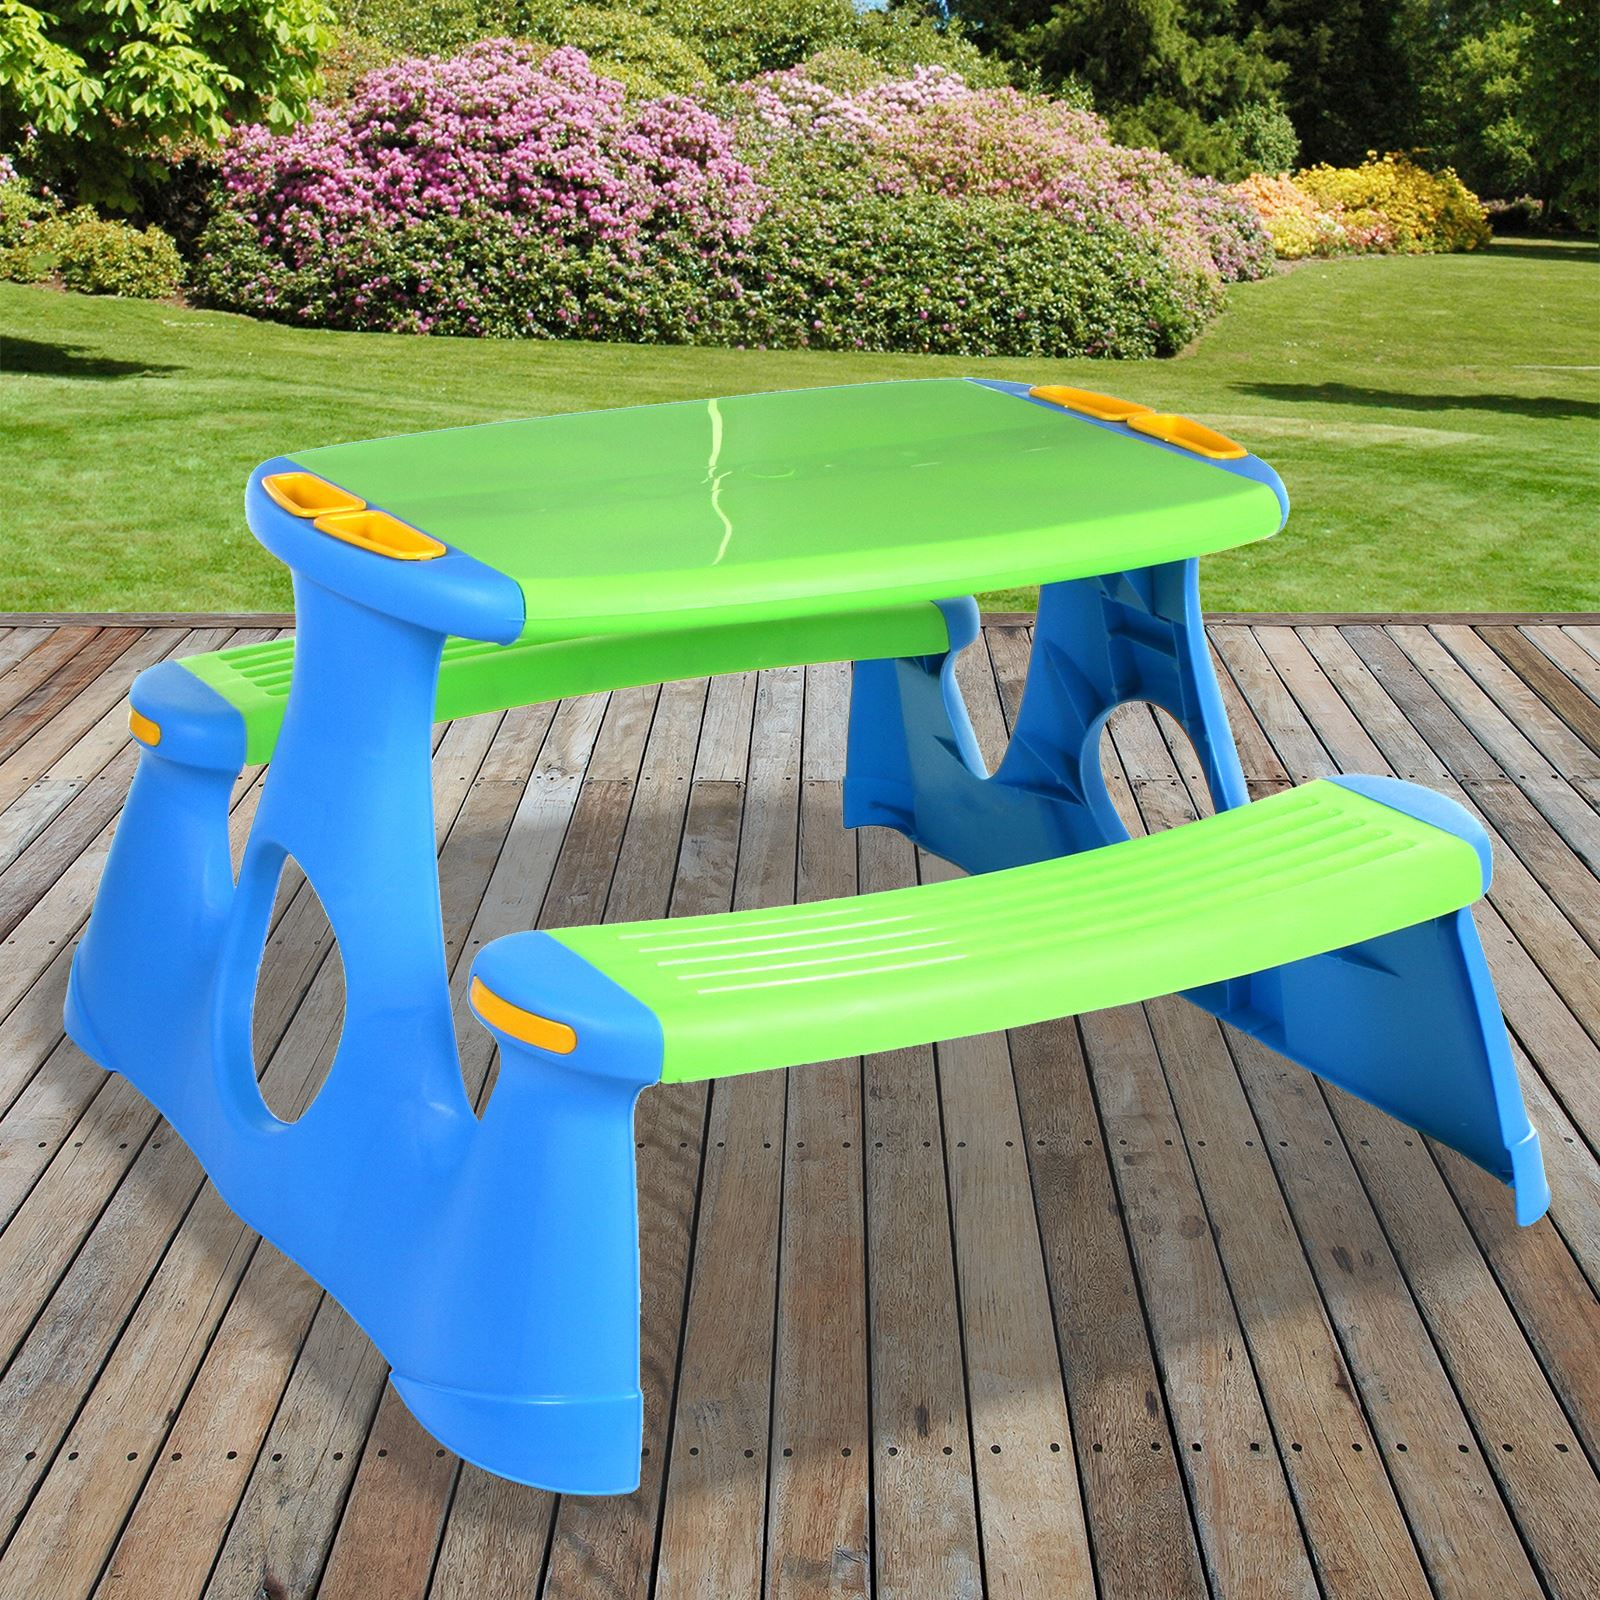 Details about Large Kids Childrens Picnic Bench Table Outdoor Garden  Furniture Patio Barbecue